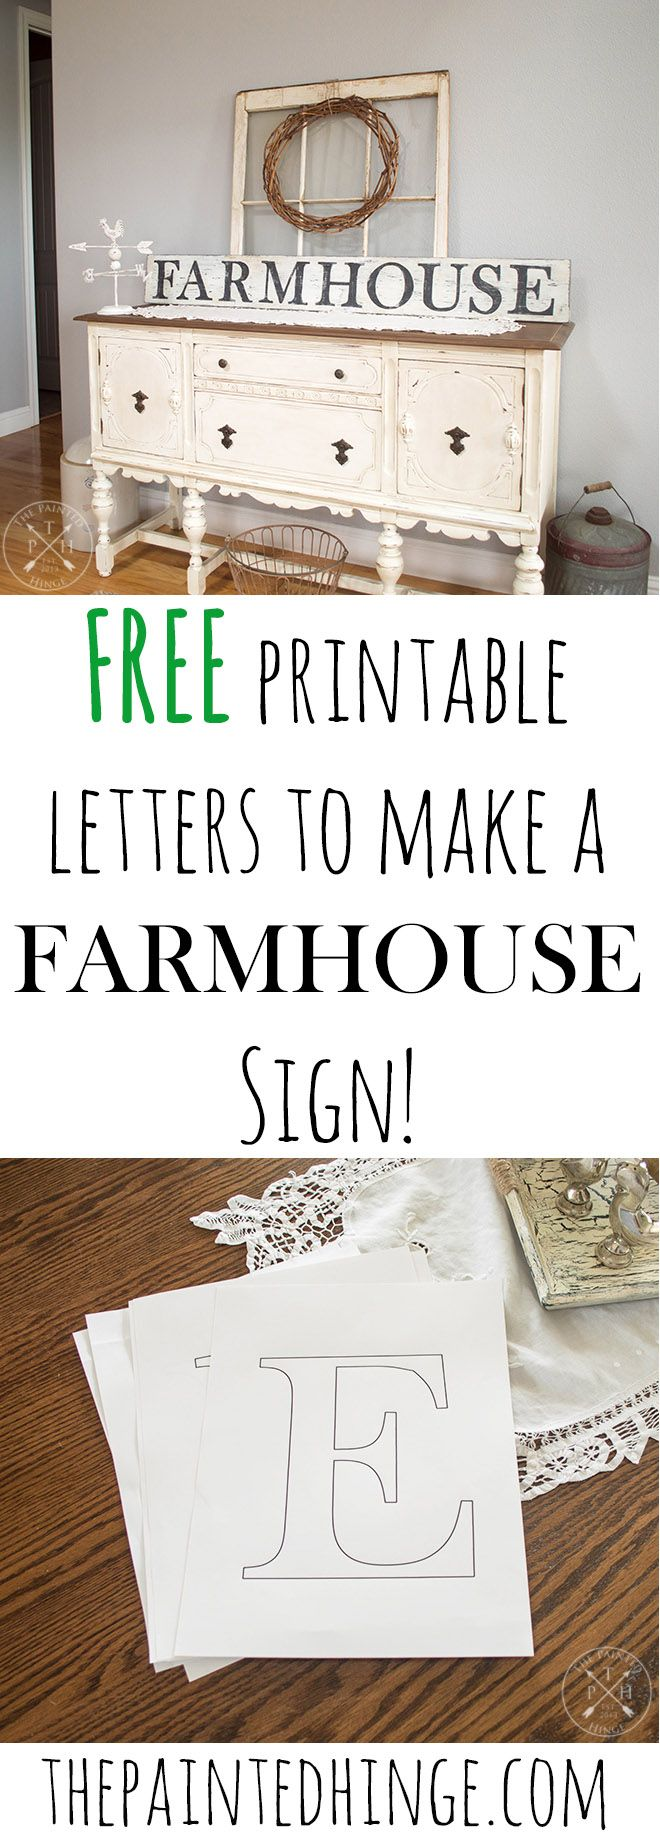 Best 25 free printable stencils ideas on pinterest free free printable letters to make a farmhouse sign amipublicfo Gallery